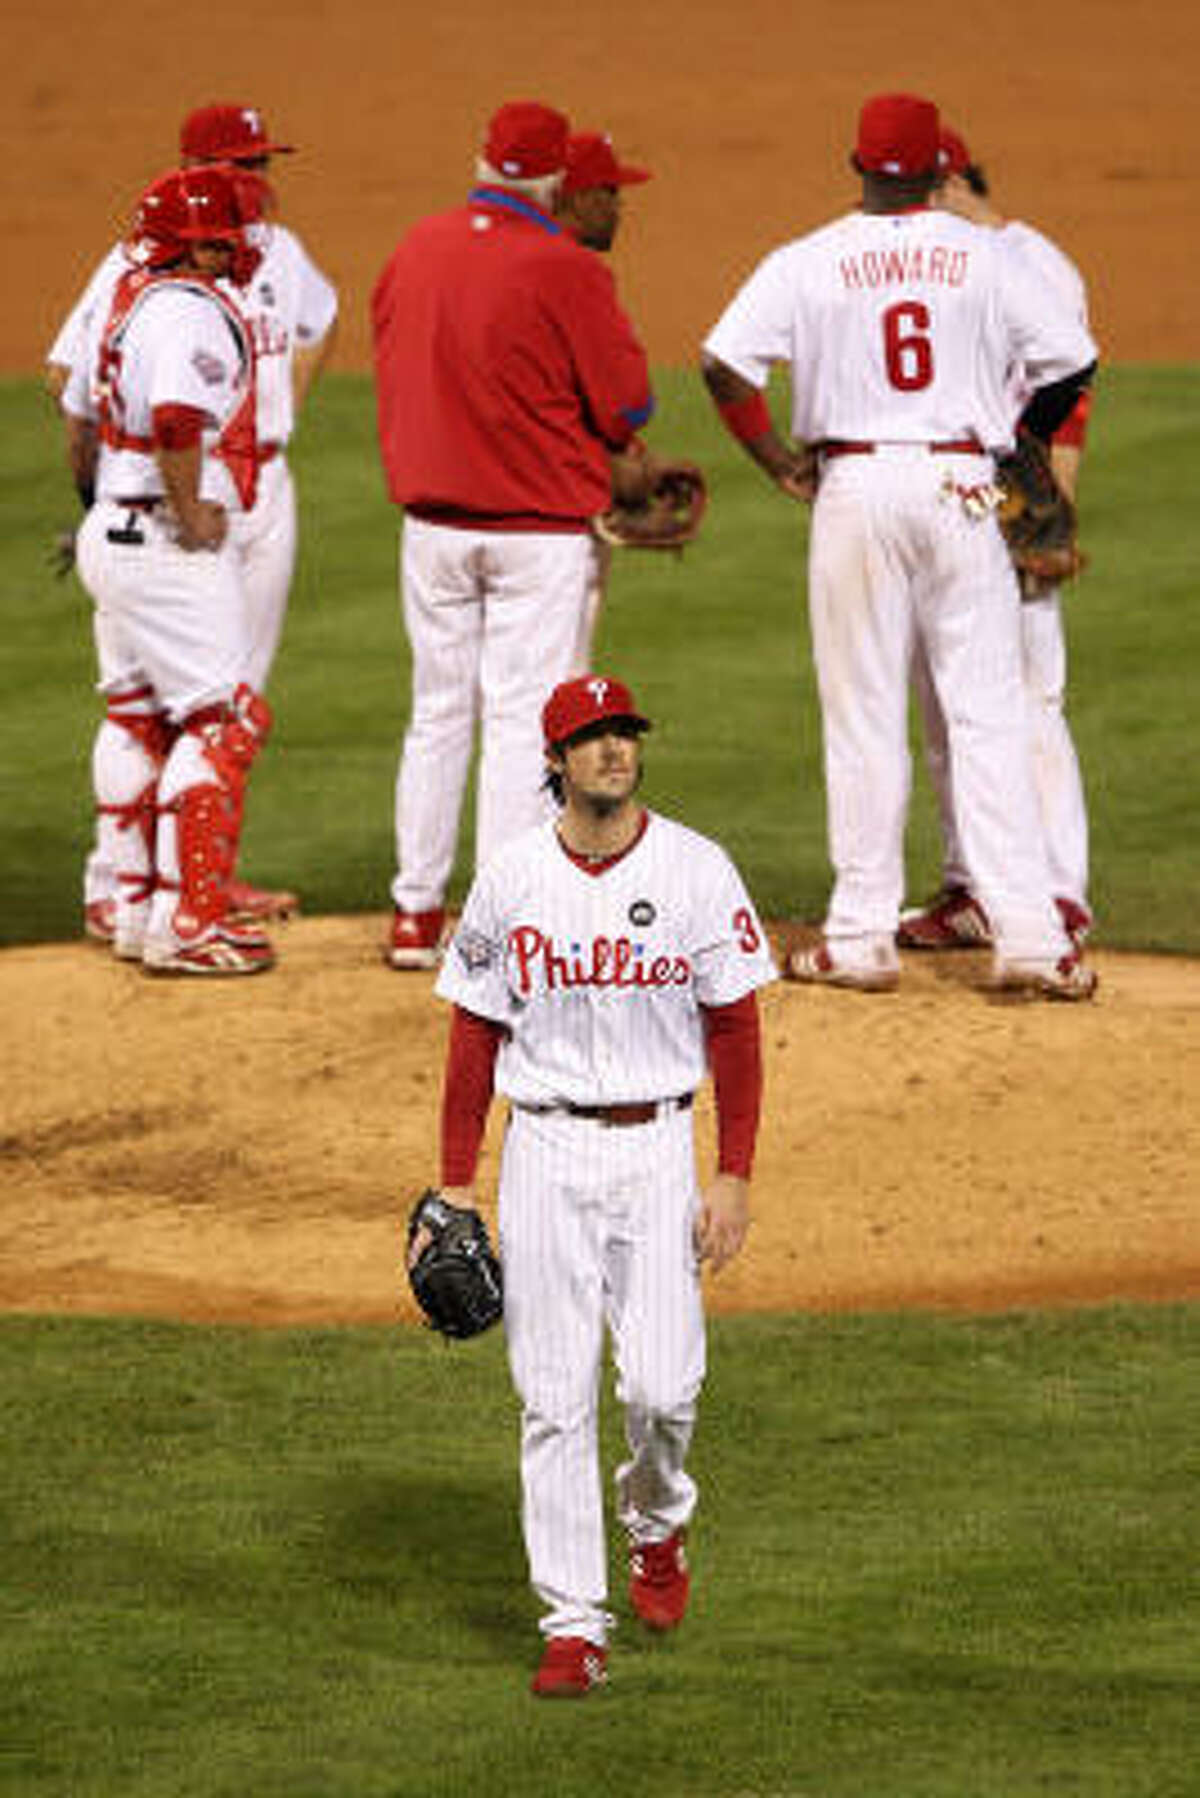 Cole Hamels did not last long for the Phillies, departing after 4 1/3 innings.